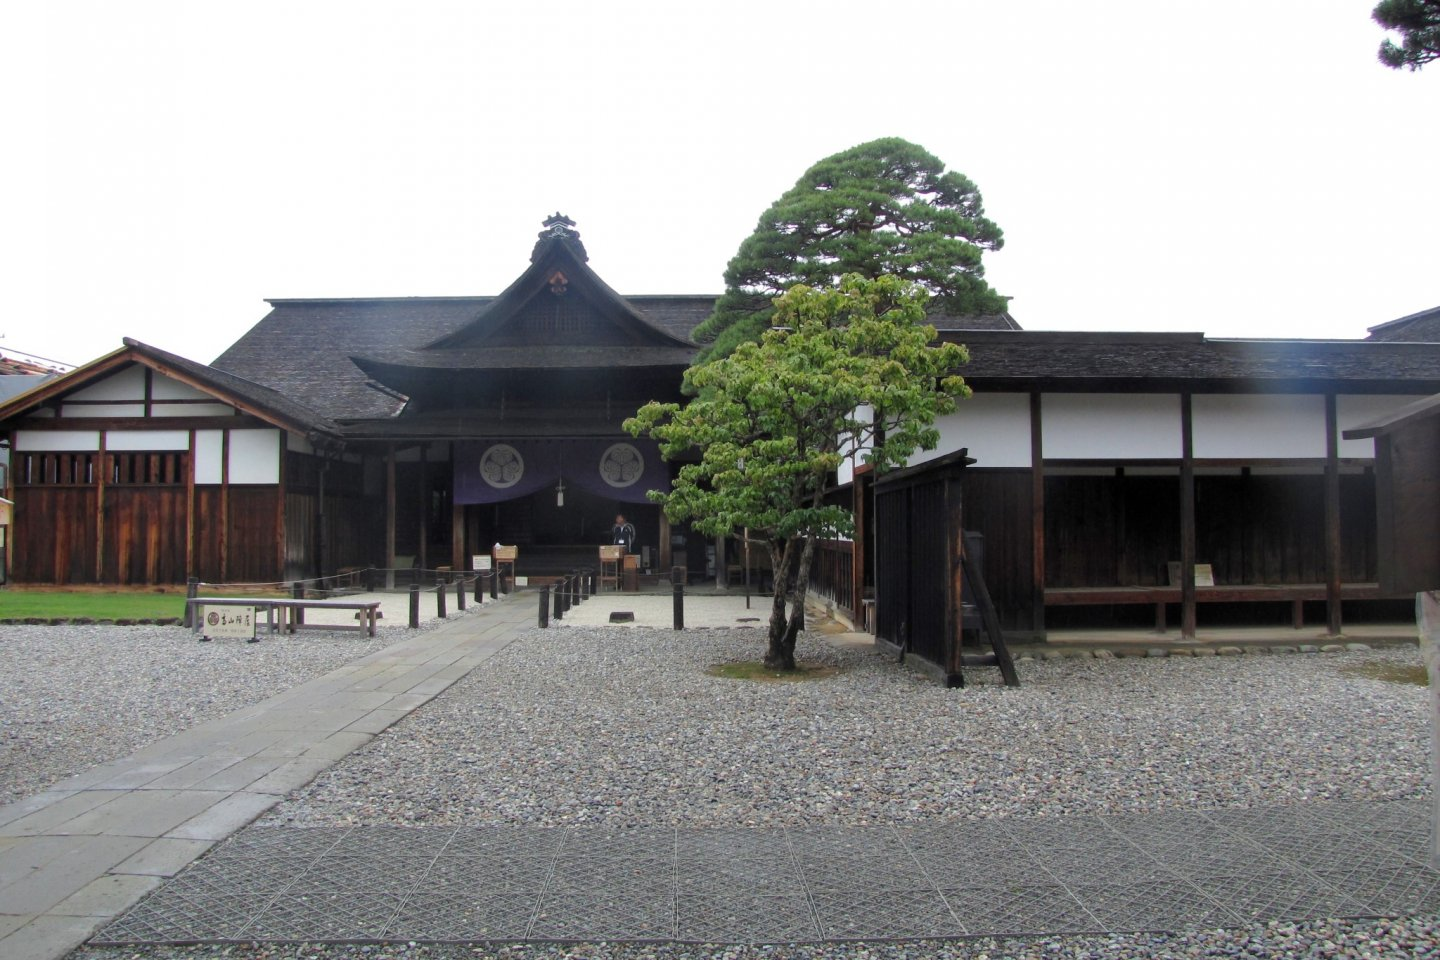 The entrance to the Takayama Jinya